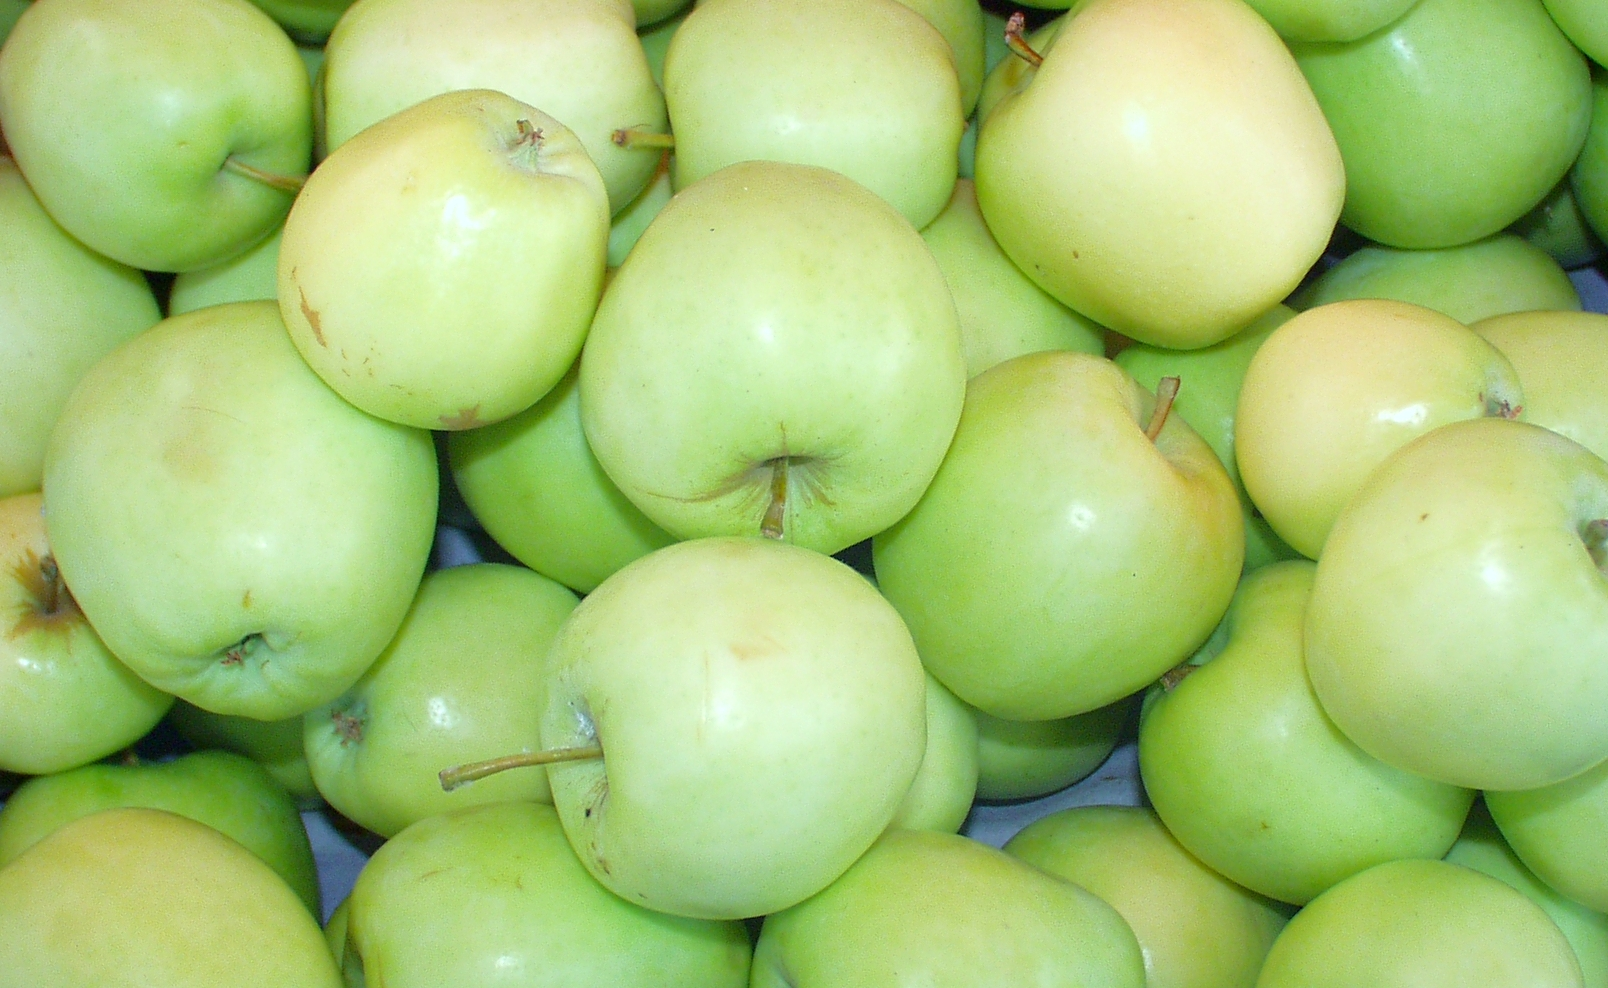 Shamrock apples, from Tiny's, are one of the first apples of the season. Photo copyright 2009 by Zachary D. Lyons.